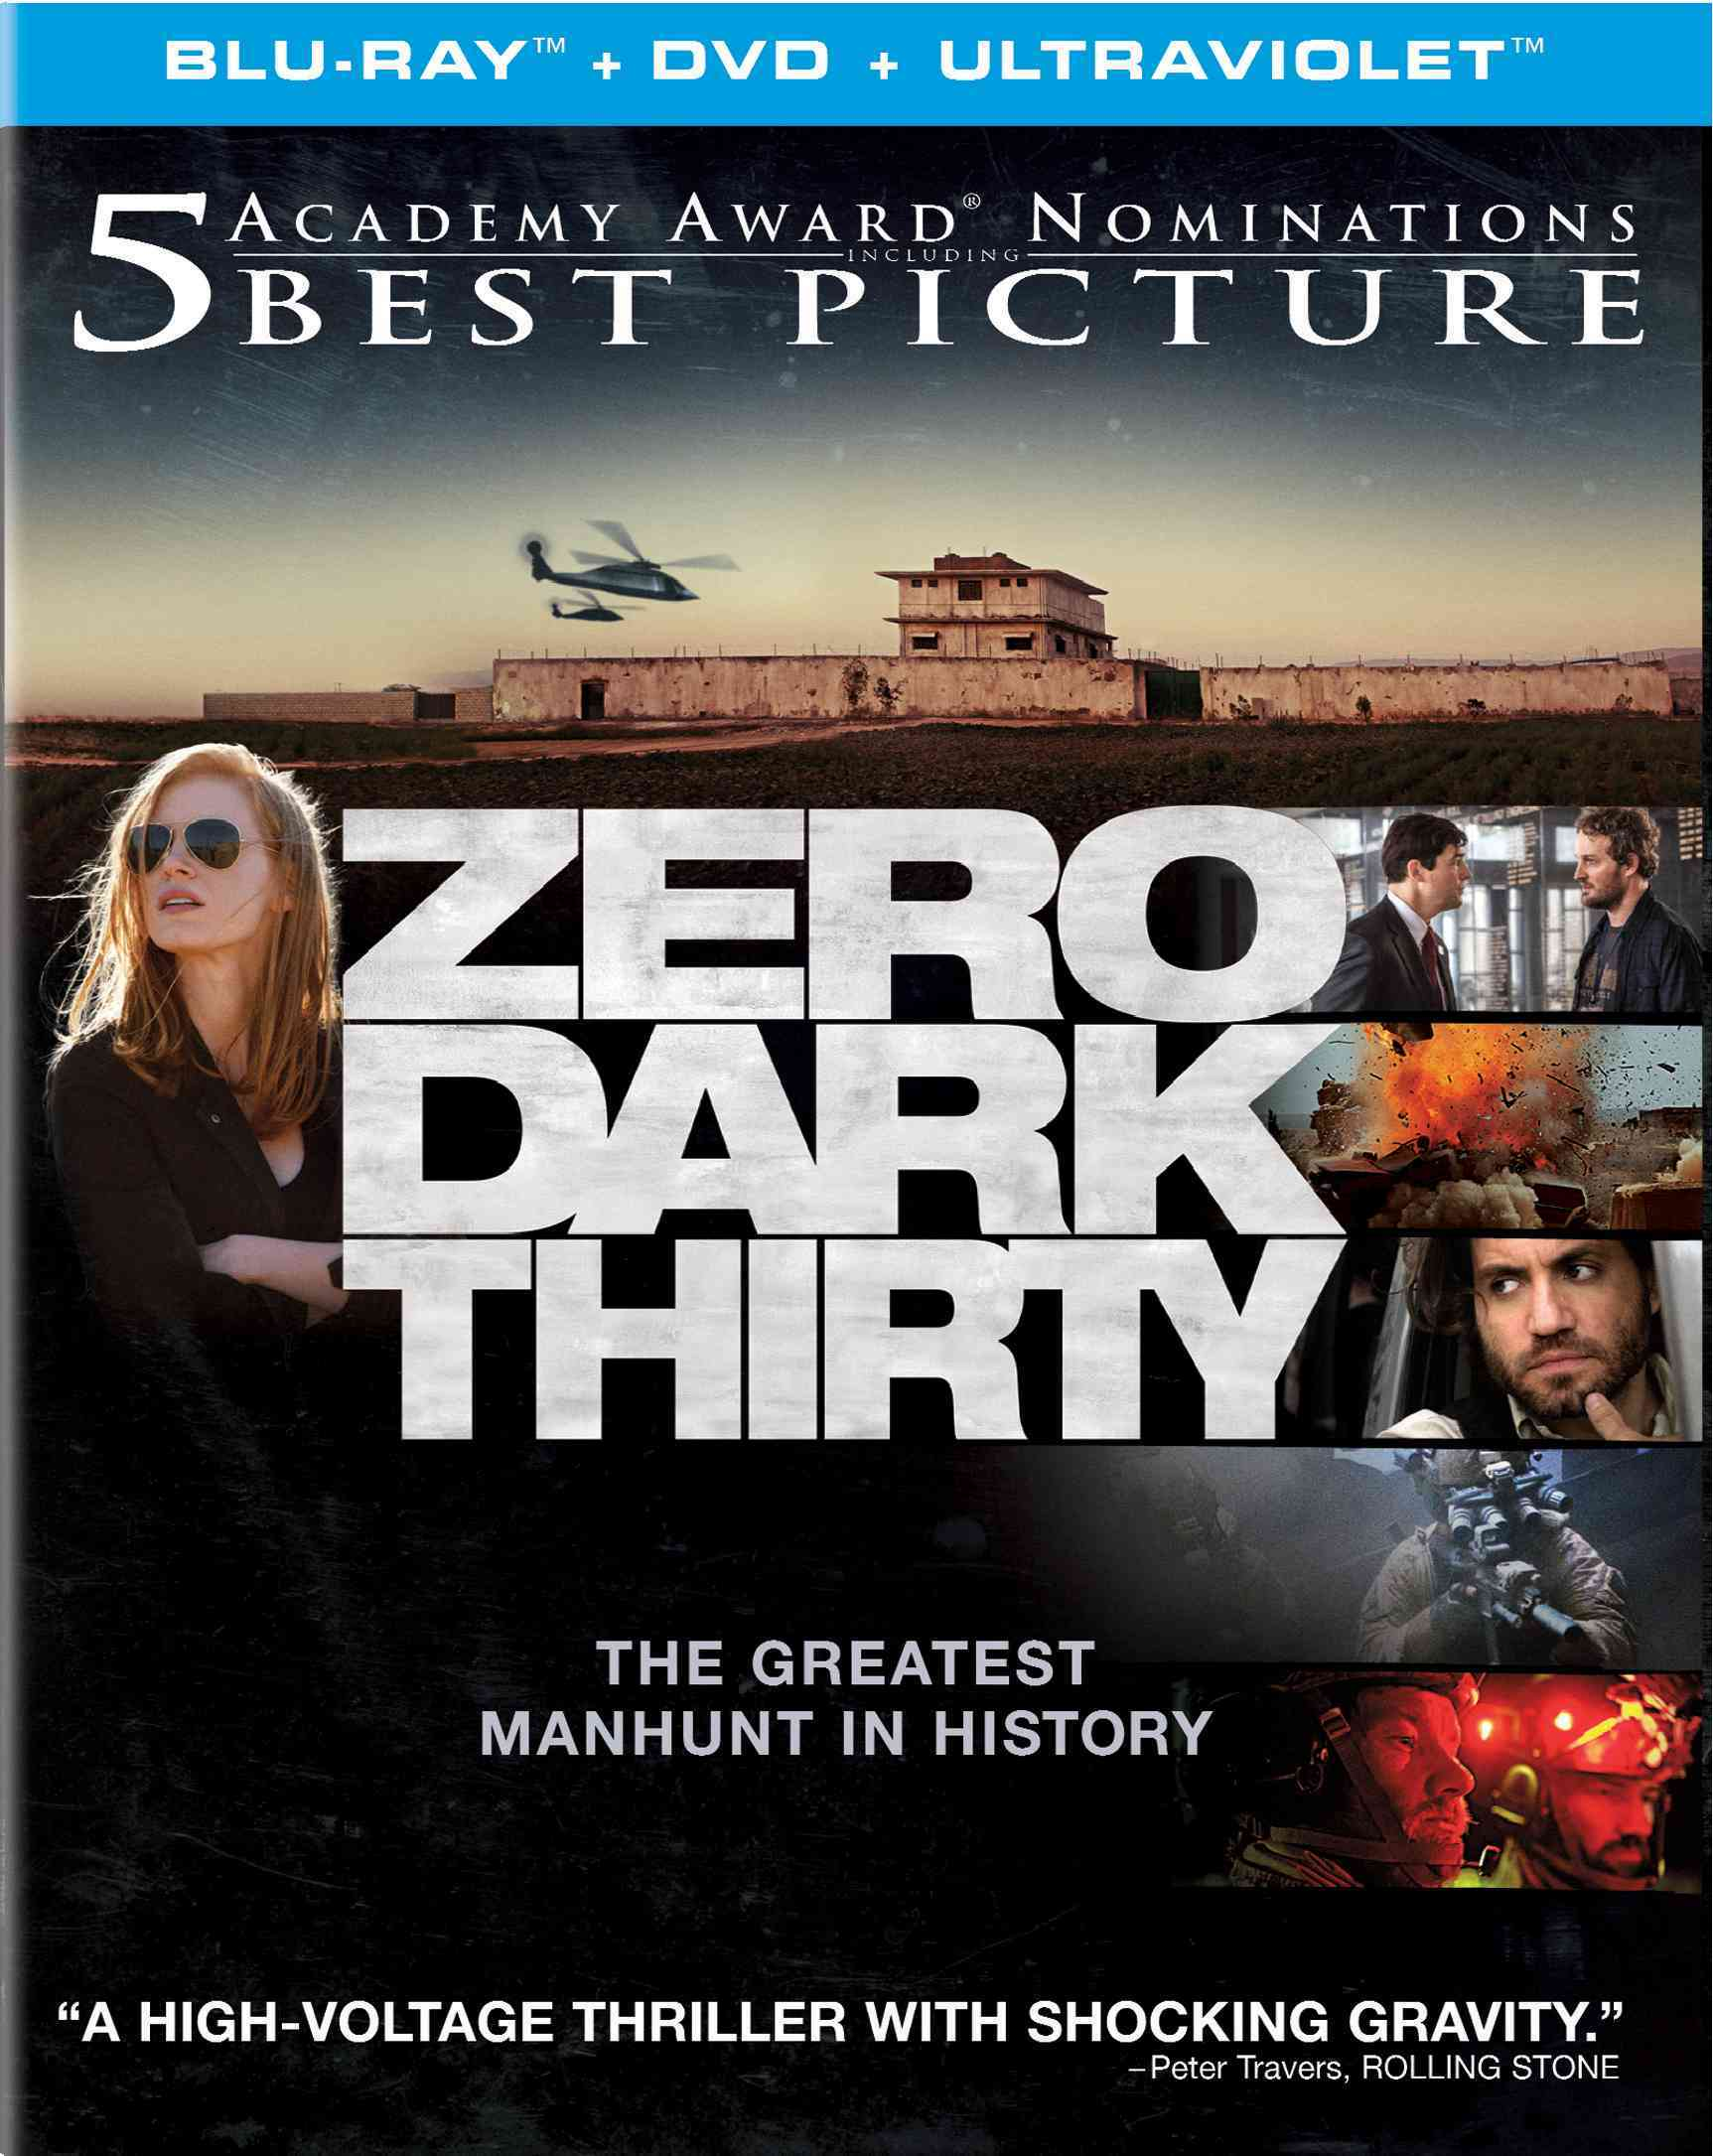 ZERO DARK THIRTY BY CLARKE,JASON (Blu-Ray)